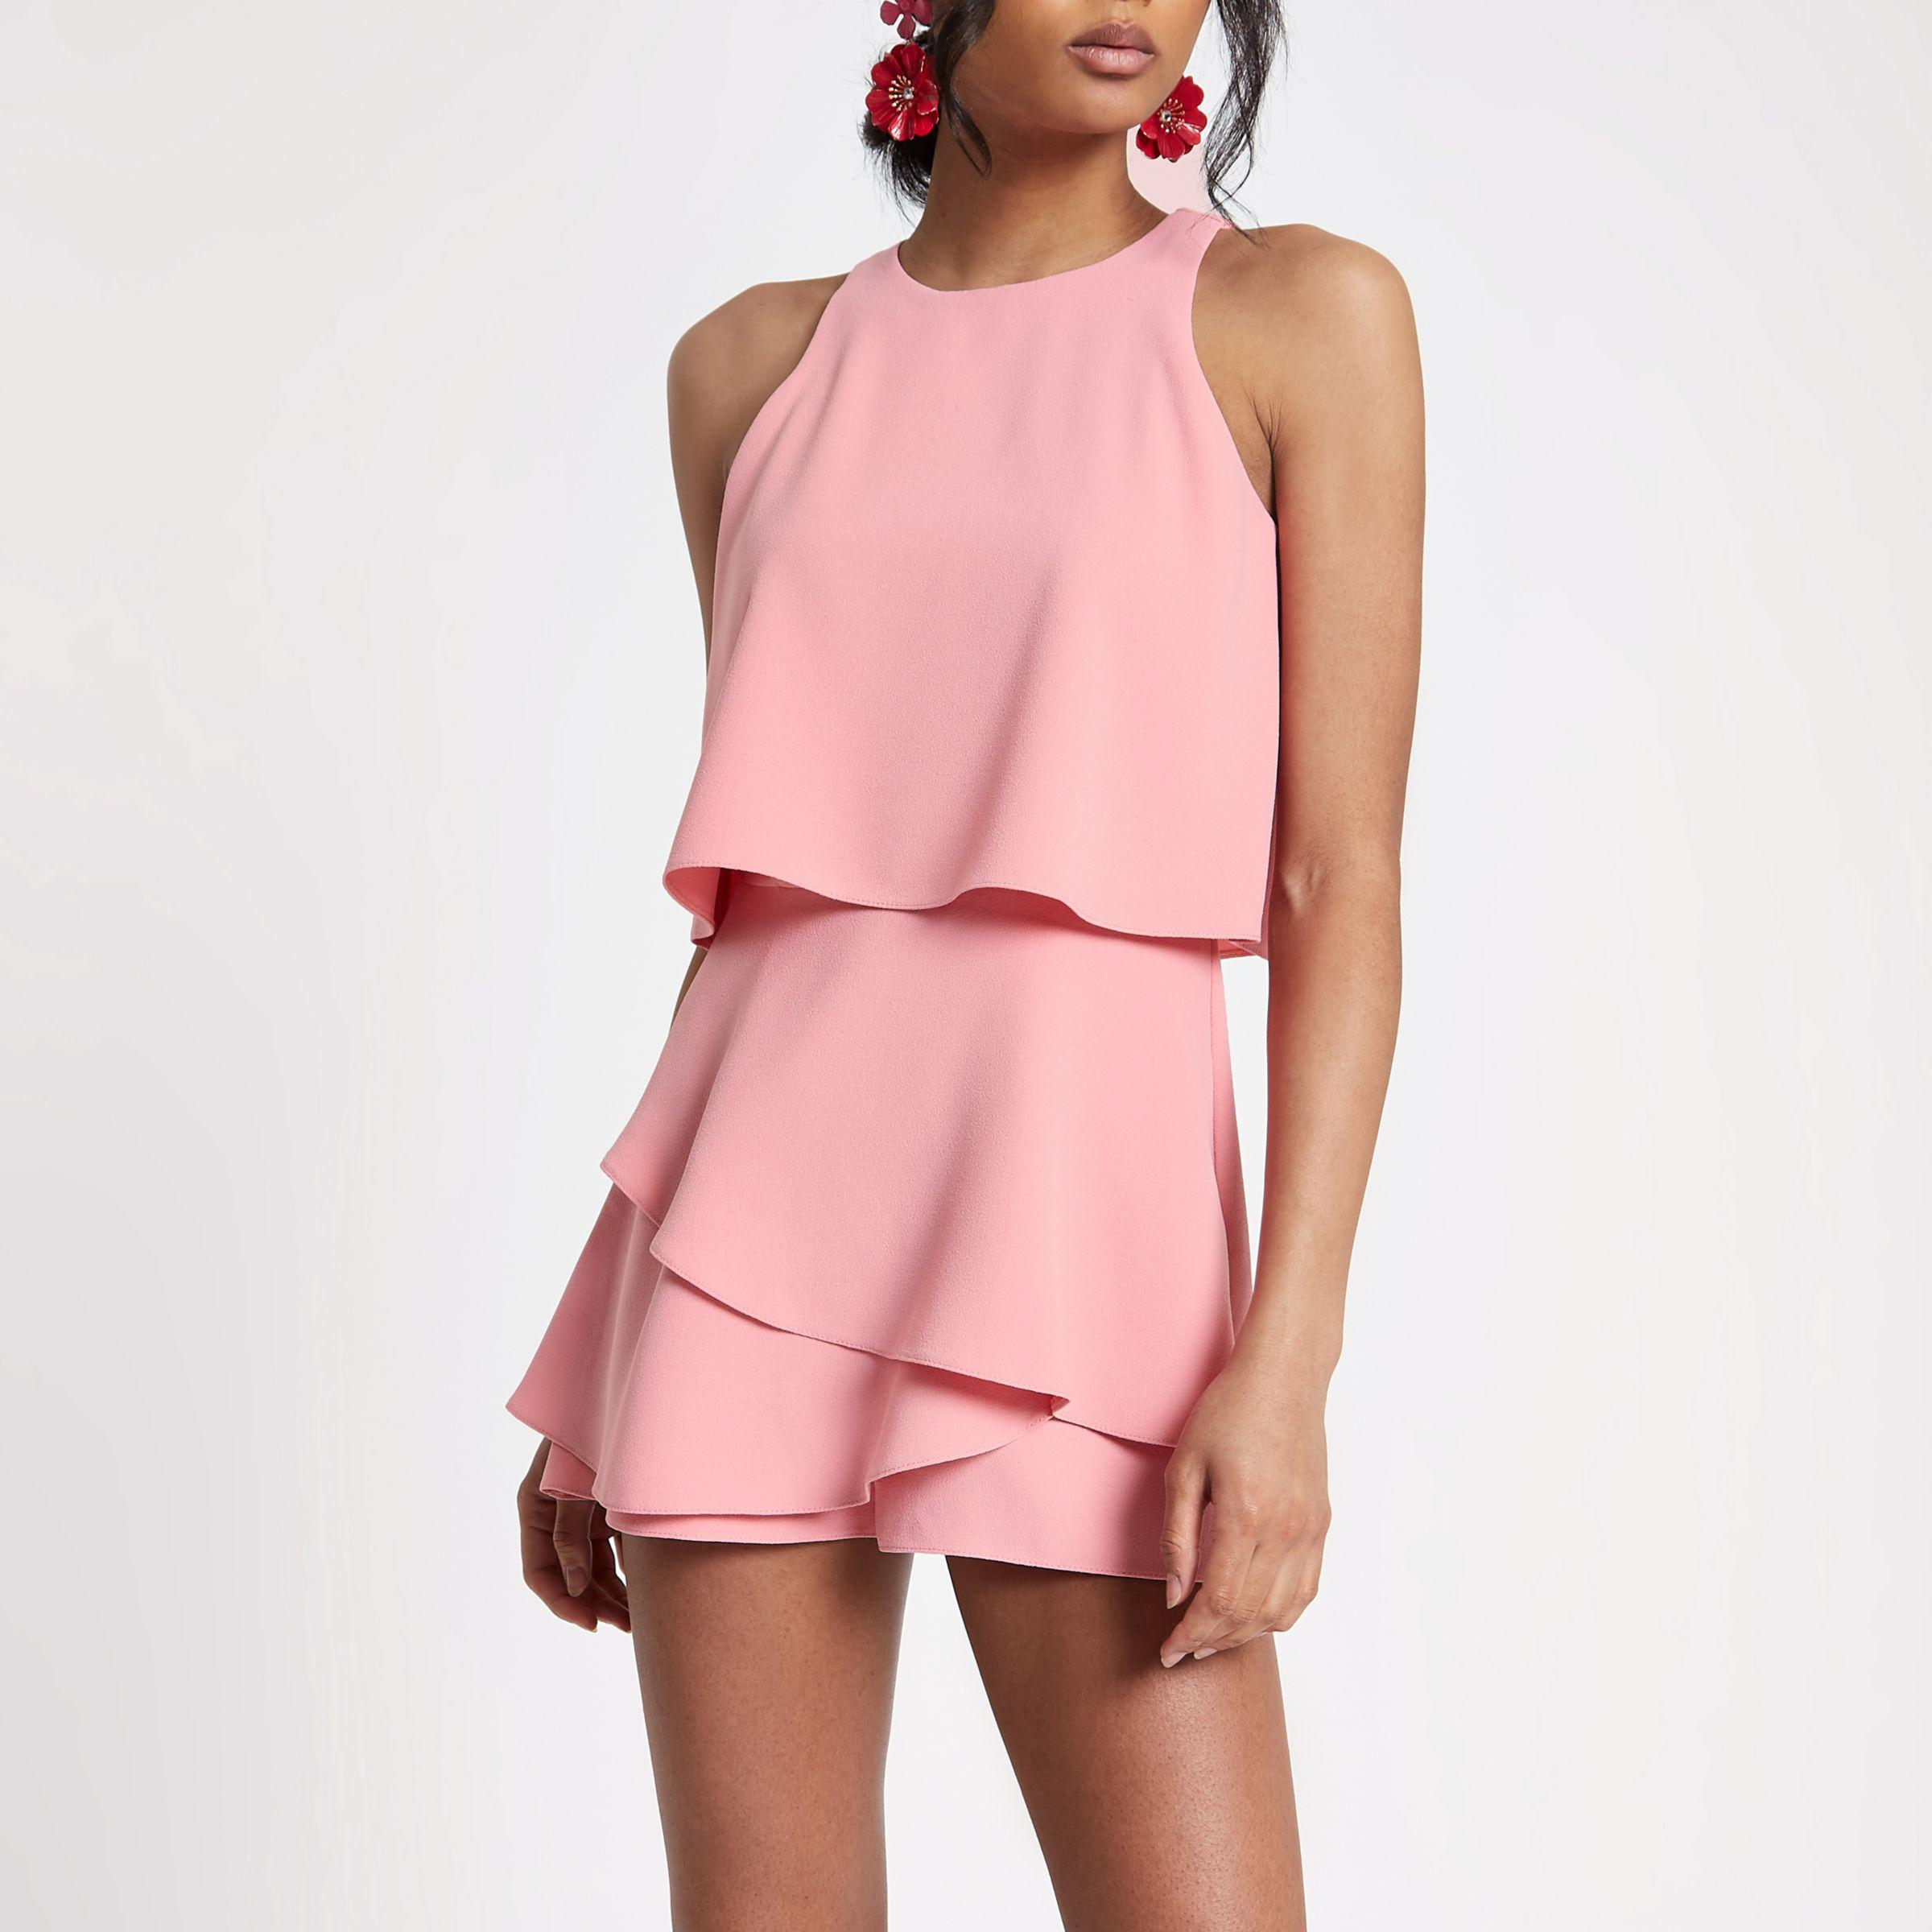 4dad2ebe3cf8 River Island Pink Tiered Frill Playsuit in Pink - Lyst